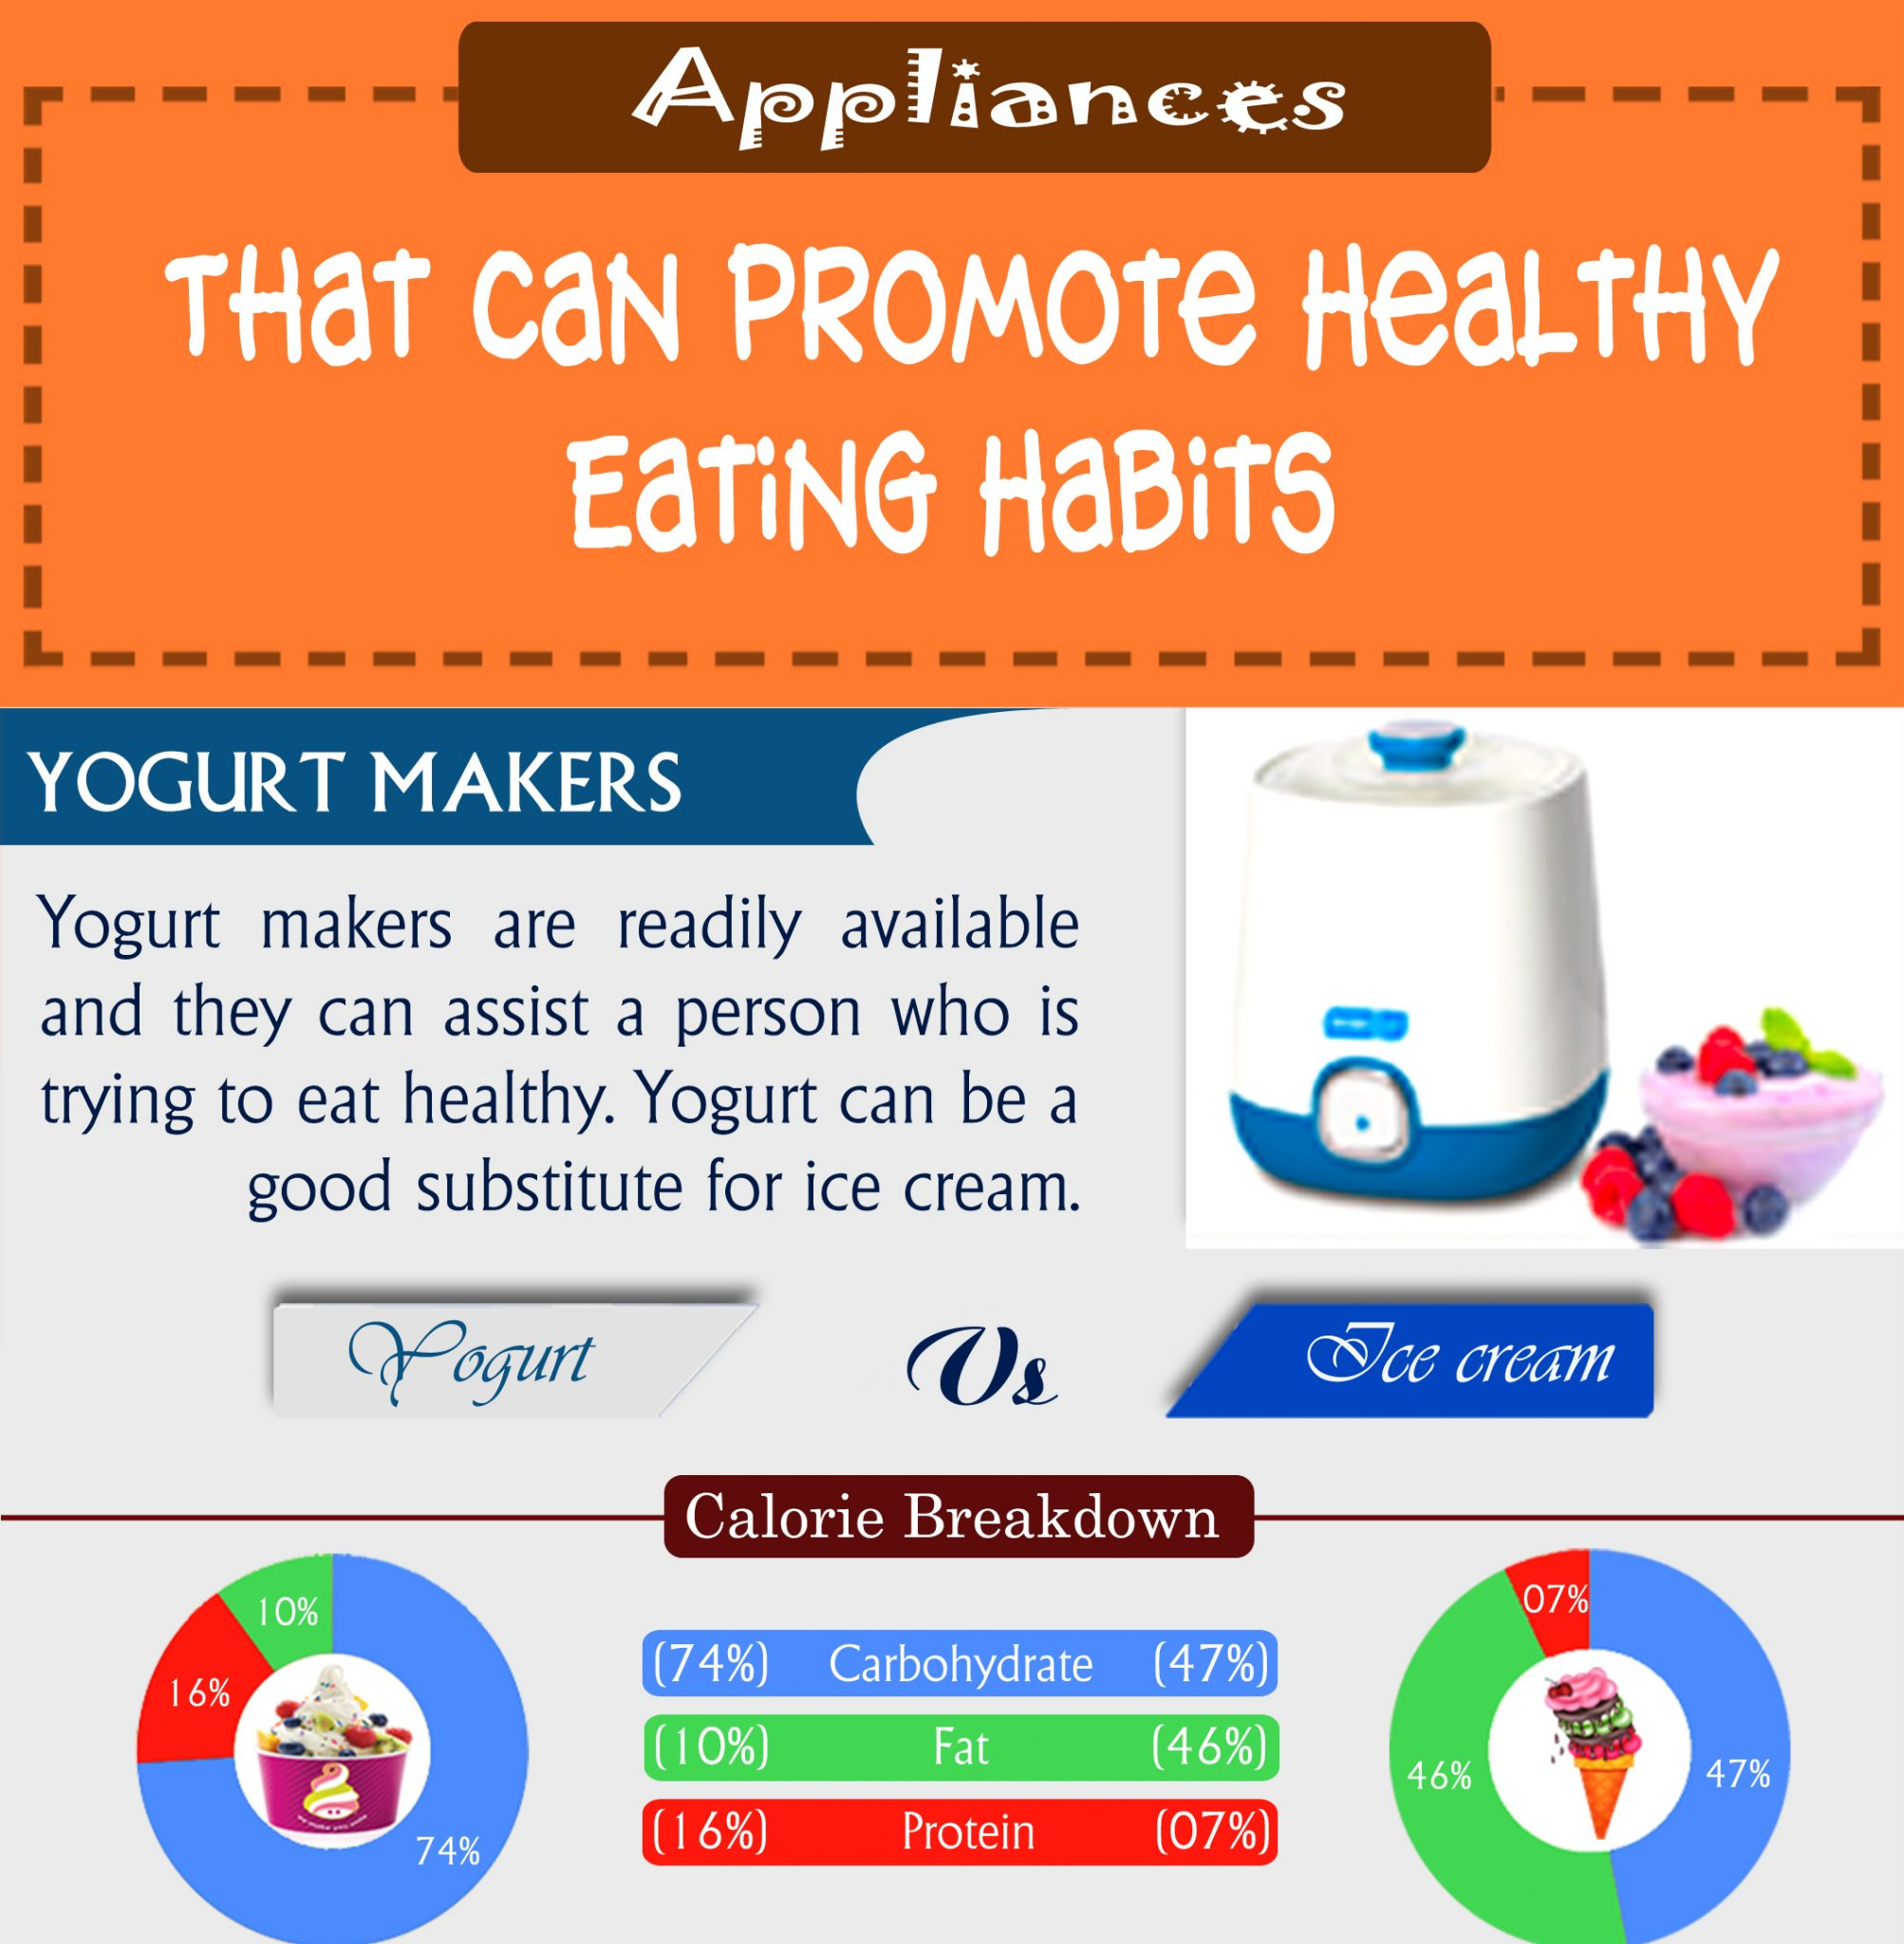 Appliances-That-Can-Promote-Healthy-Eati